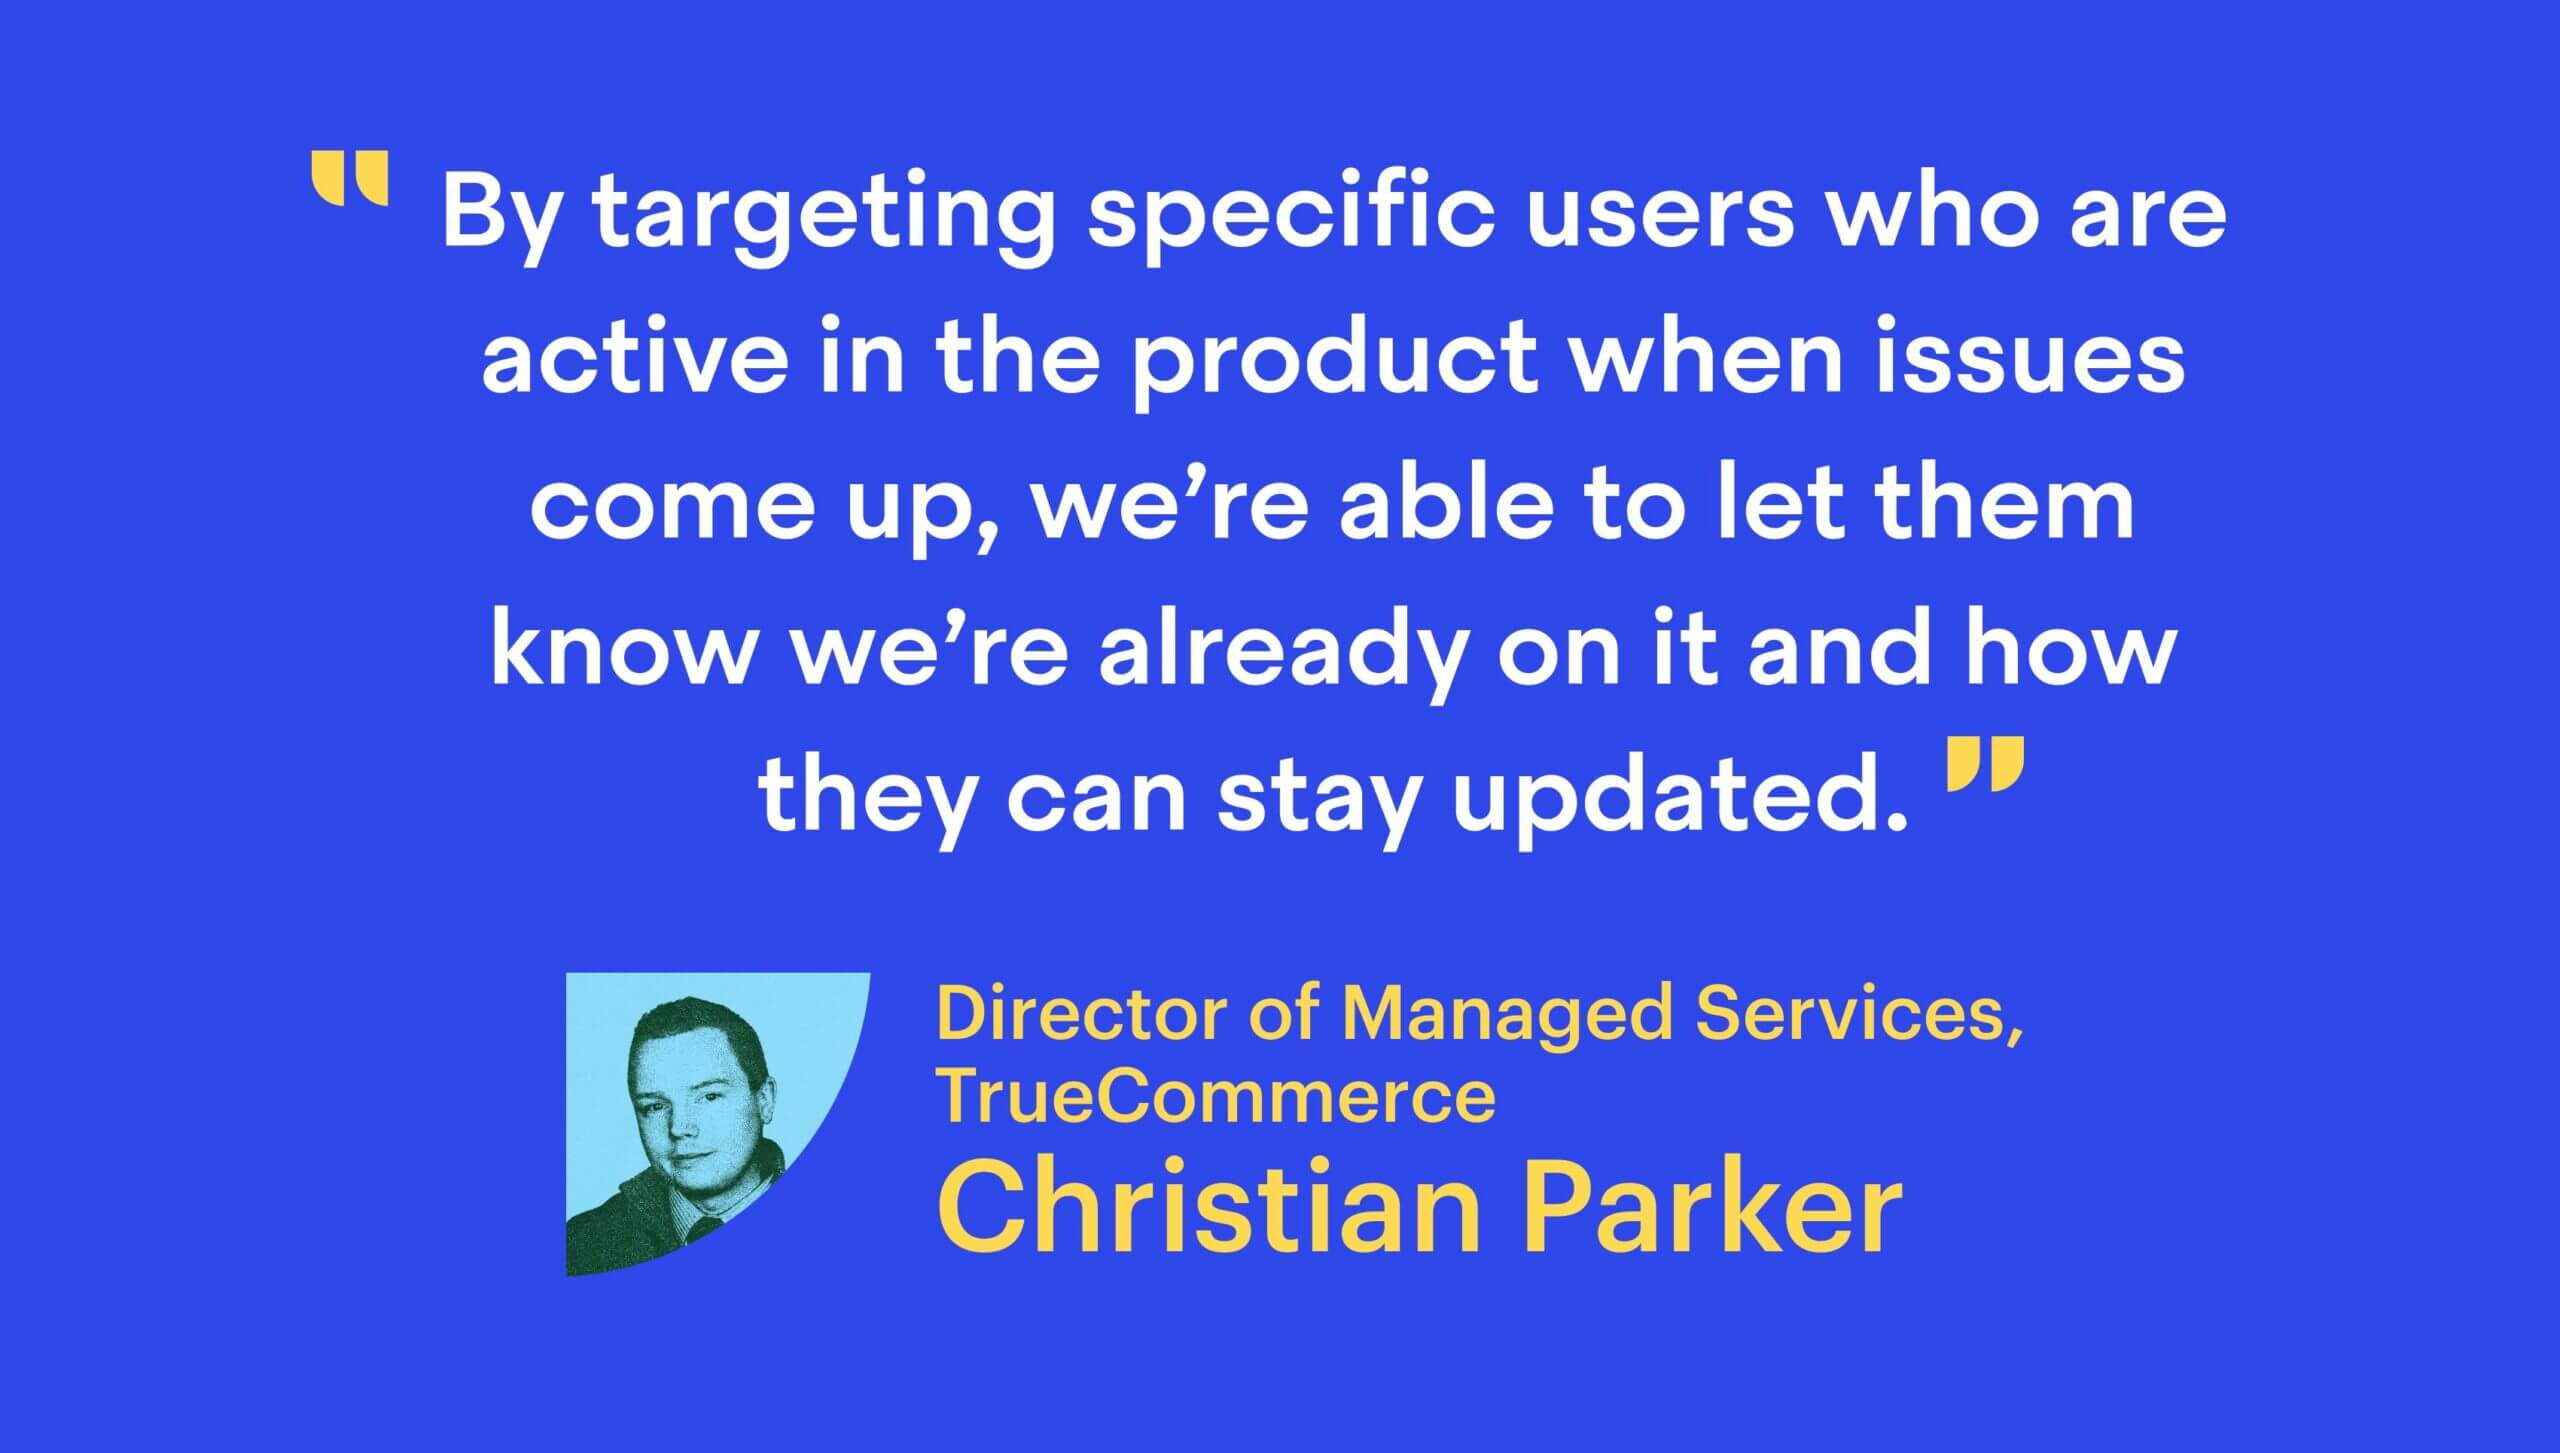 """""""By targeting specific users who are active in the product when issues come up, we're able to let them know we're already on it and how they can stay updated."""""""